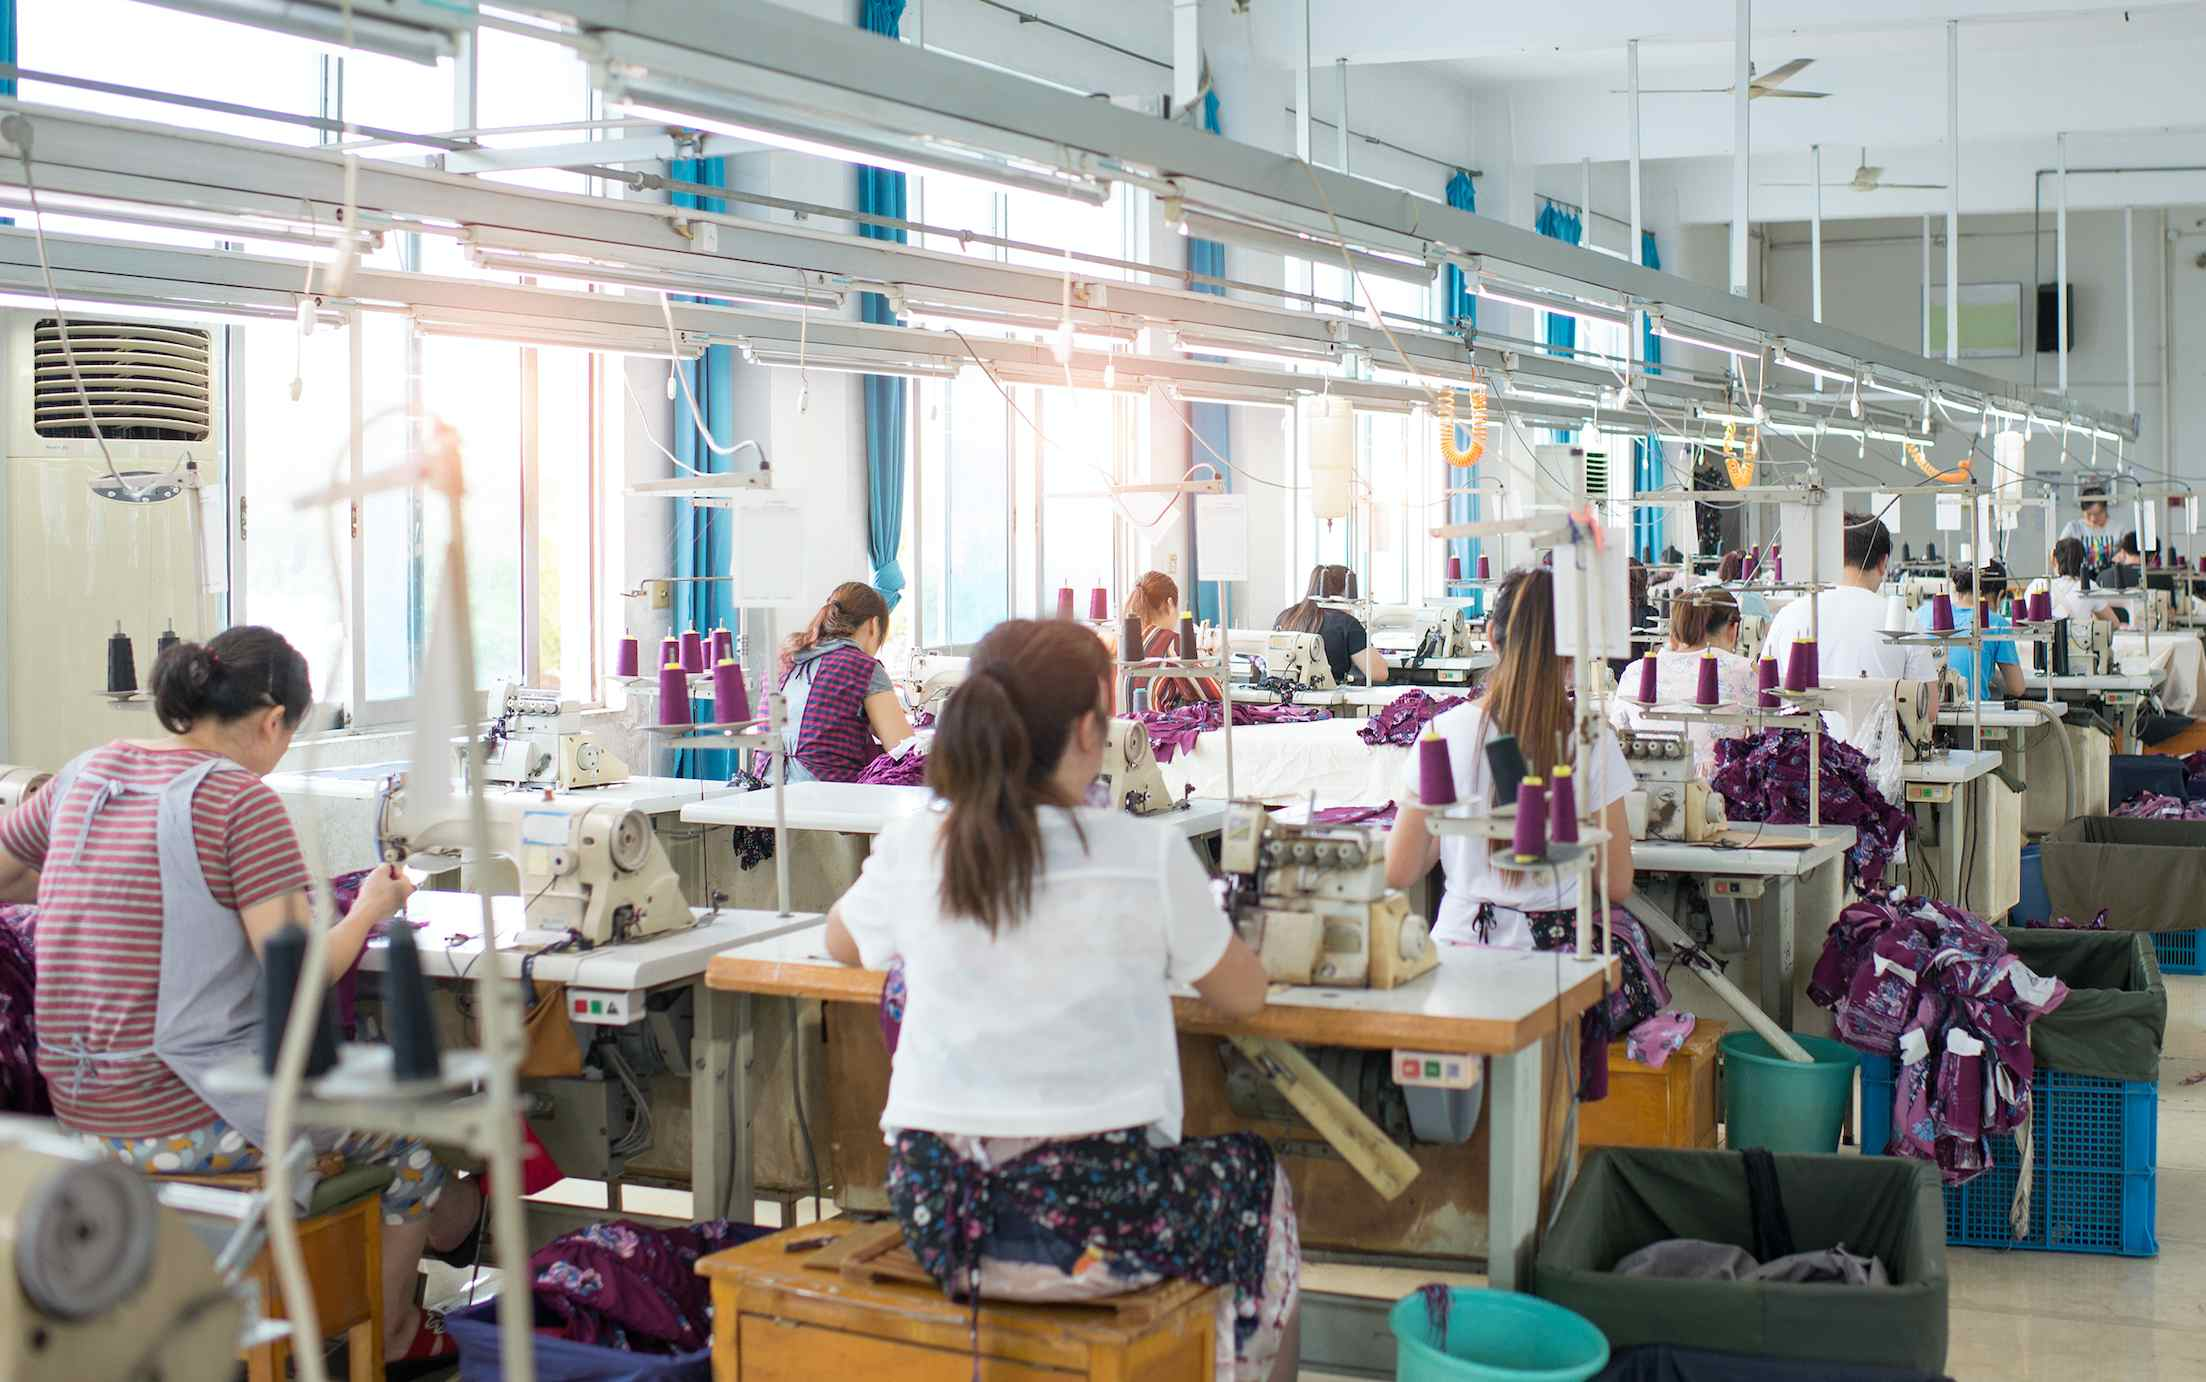 Workers making clothes